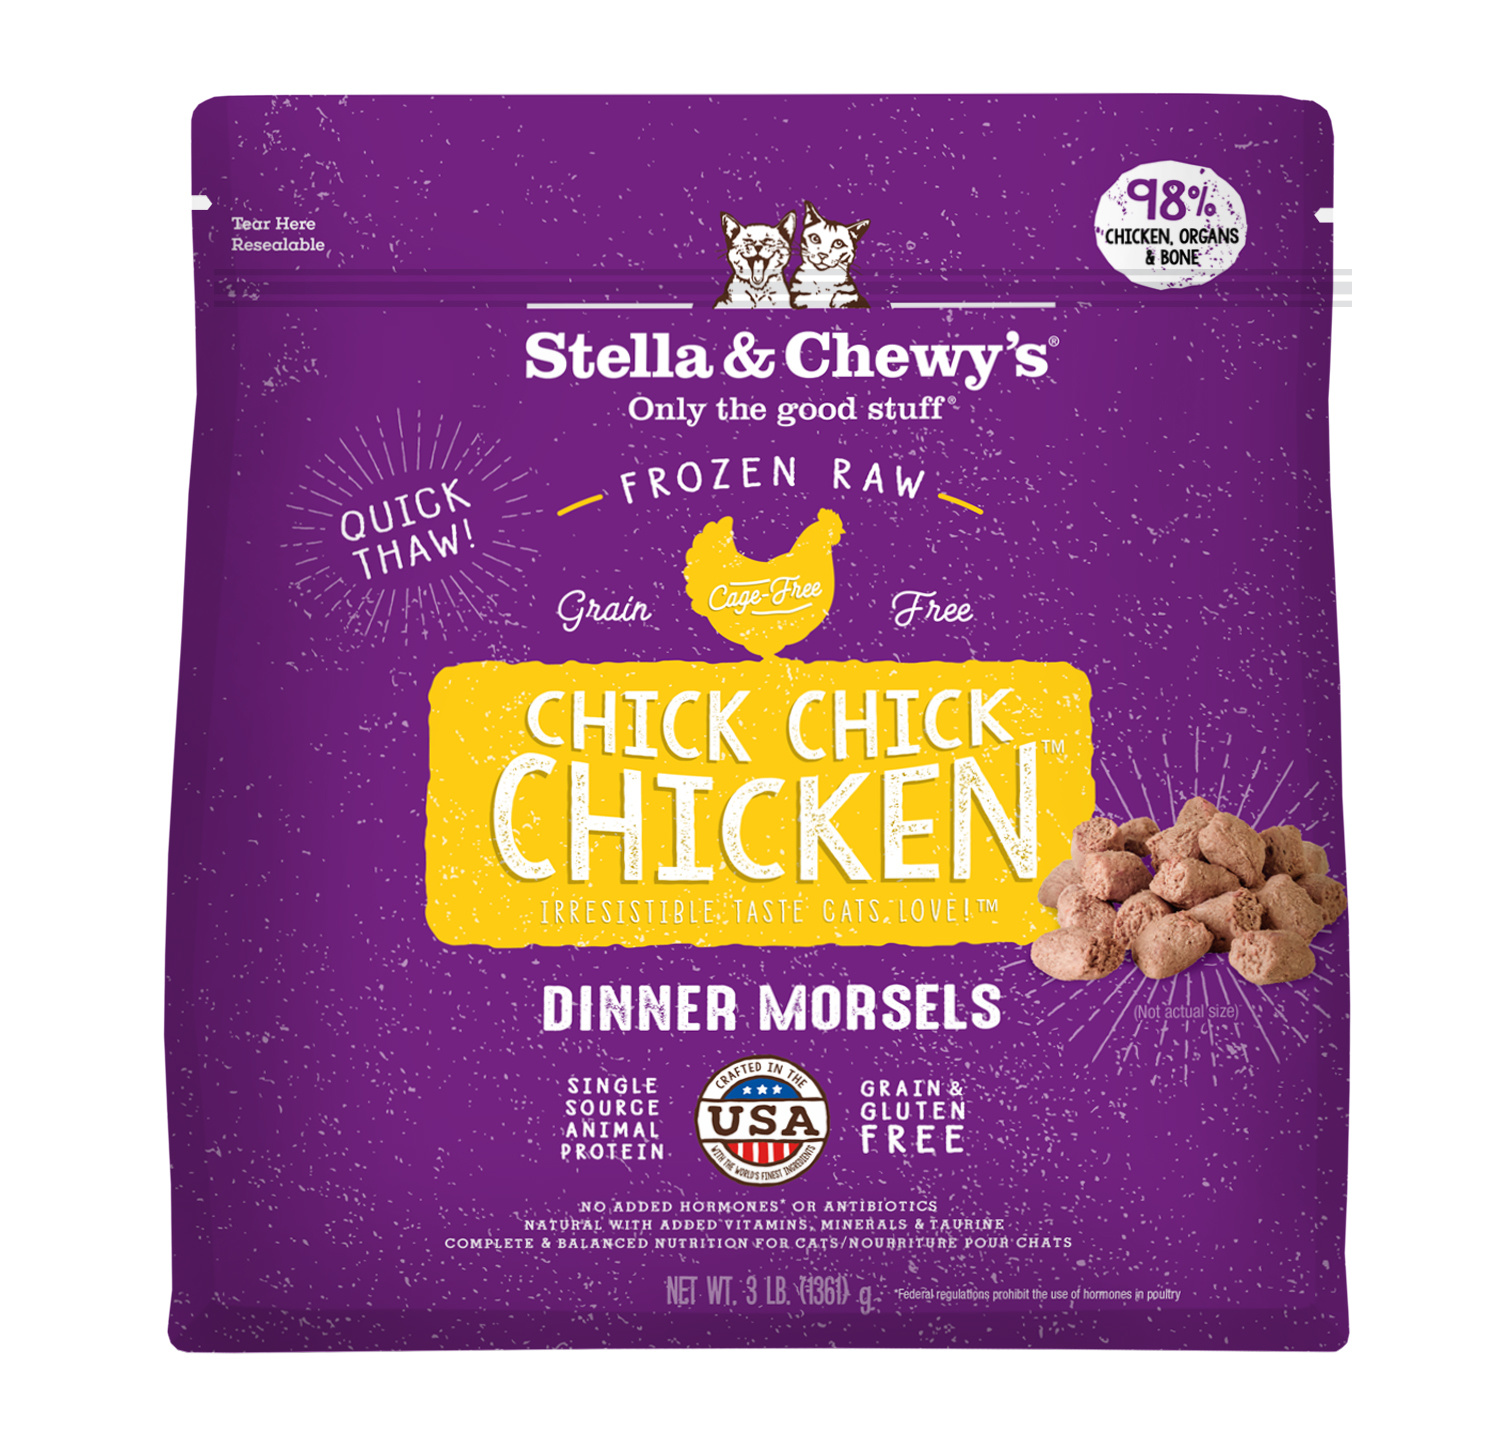 Stella & Chewys Stella & Chewys Chick Chick Chicken Frozen Raw Dinner Morsels For Cats